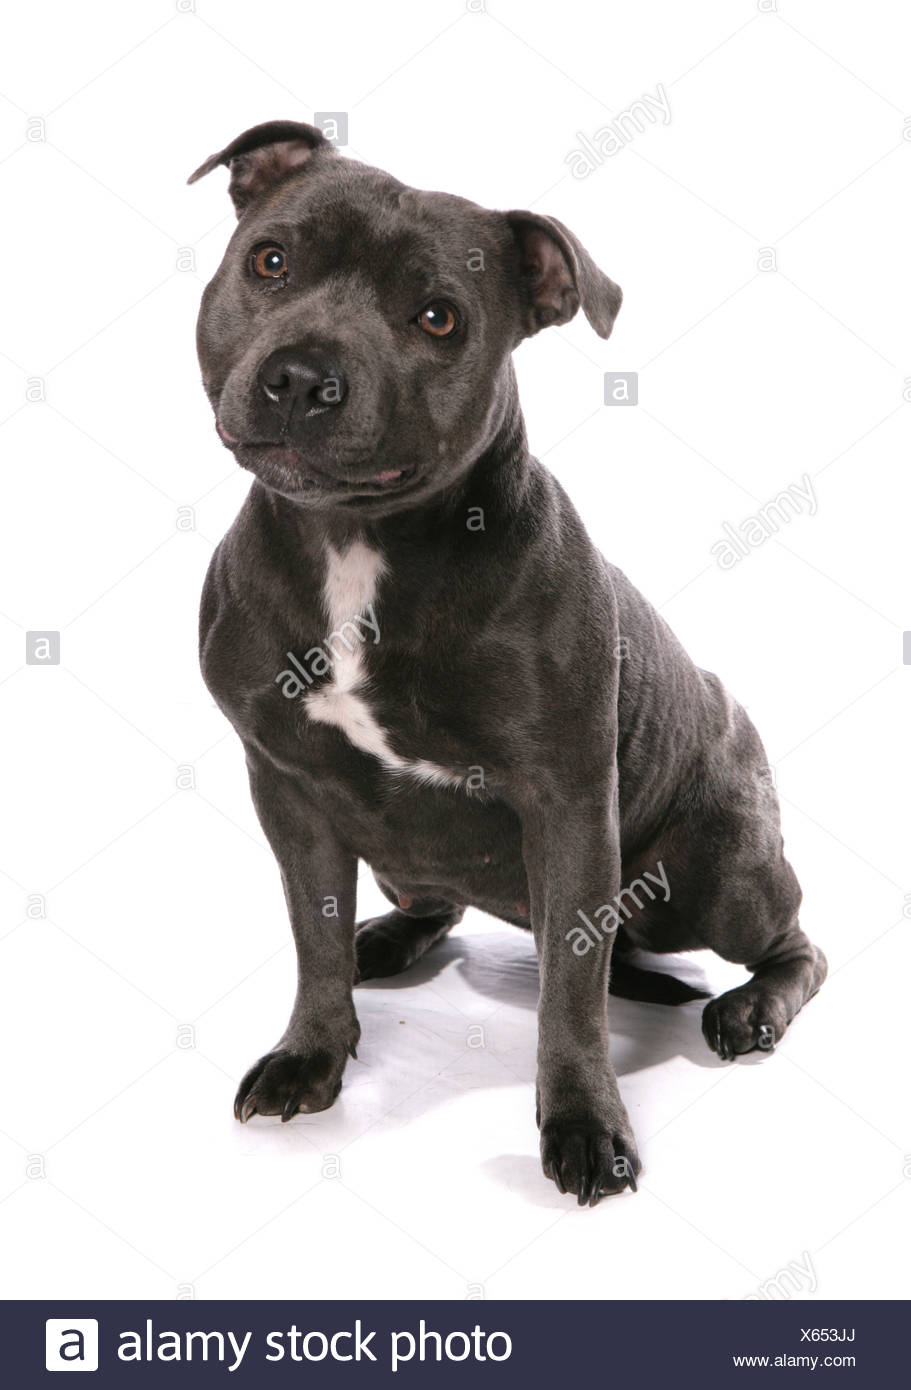 Domestic Dog, Staffordshire Bull Terrier, adult, sitting - Stock Image